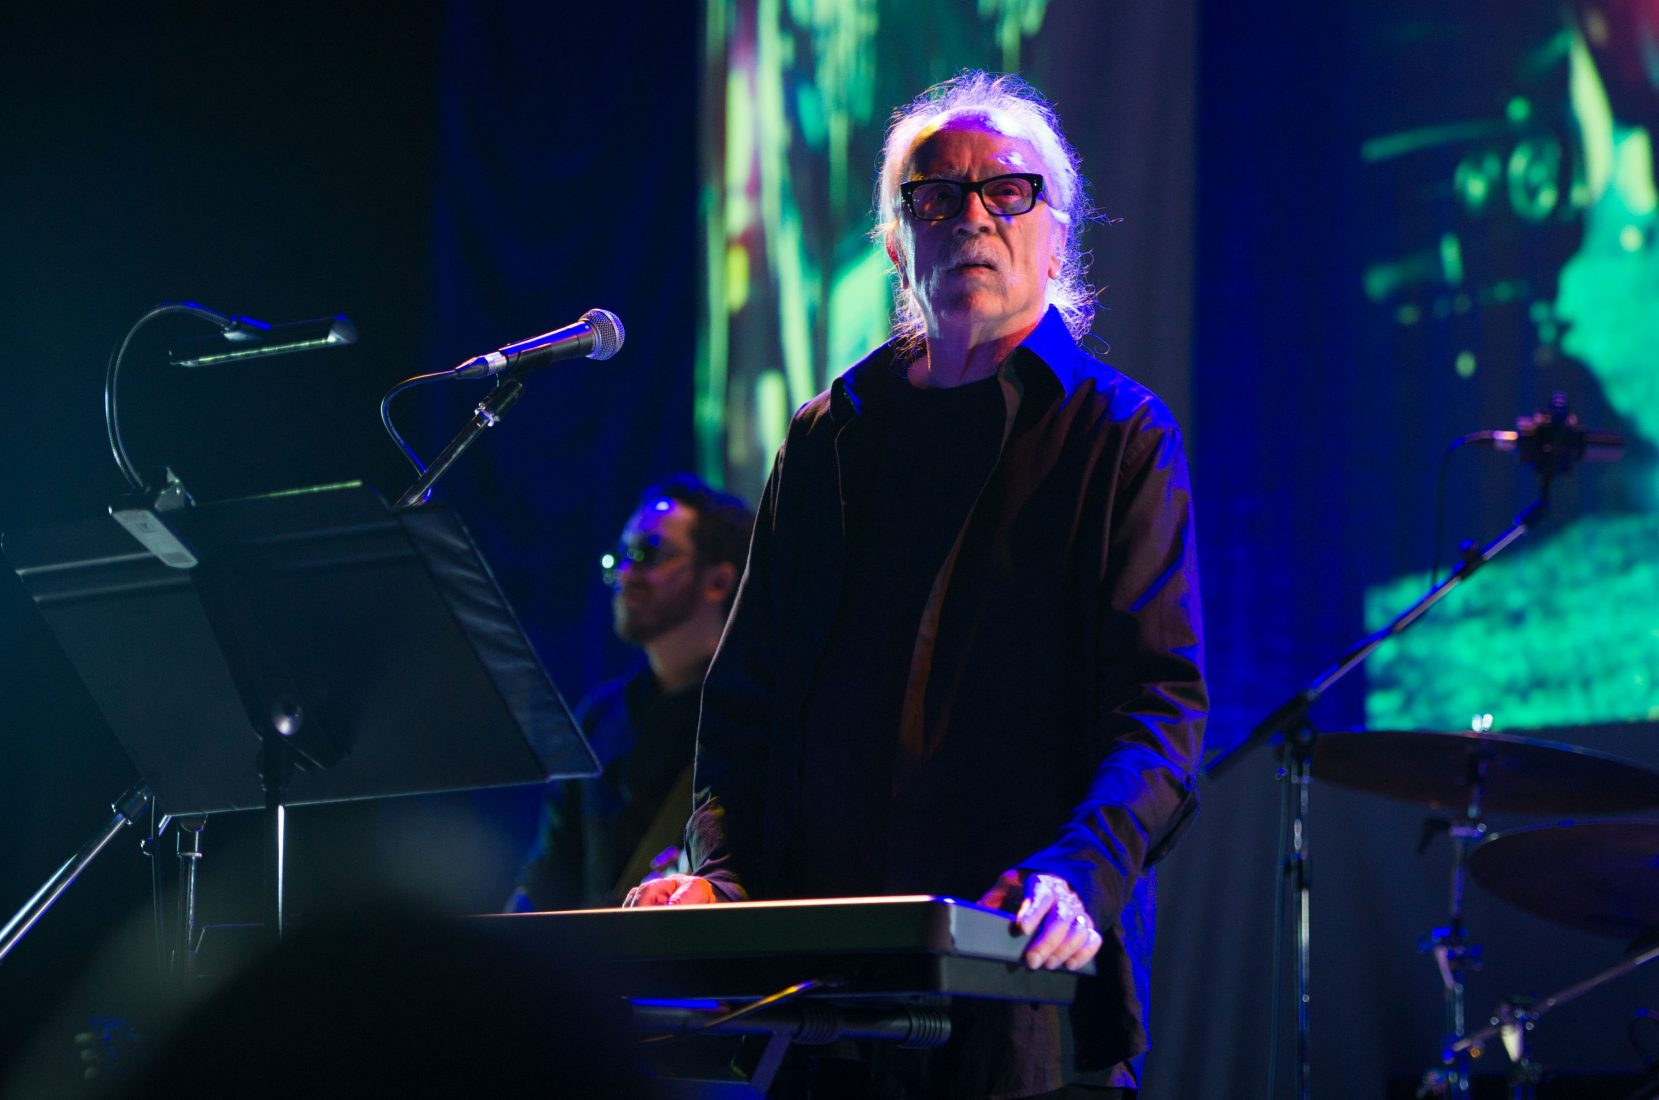 John Carpenter in concert - Coventry